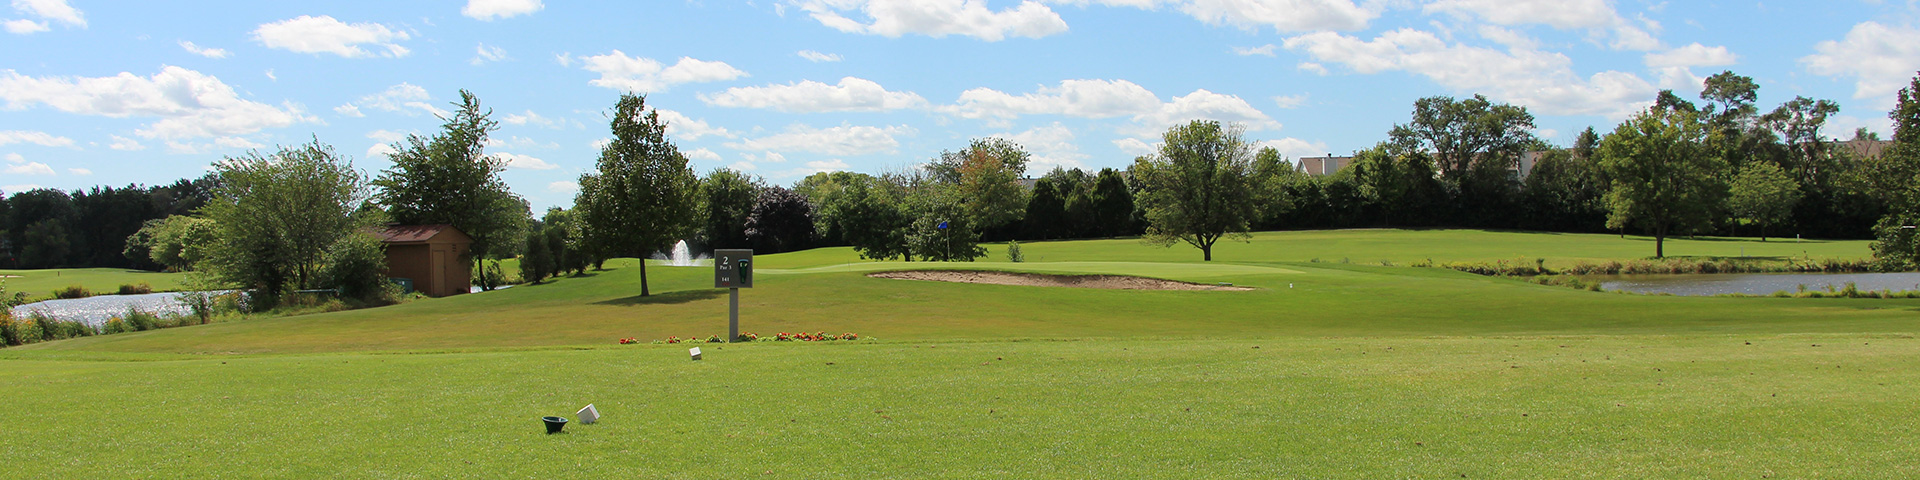 Boughton Ridge Golf Course | Online Golf Guide | Golfshake.com